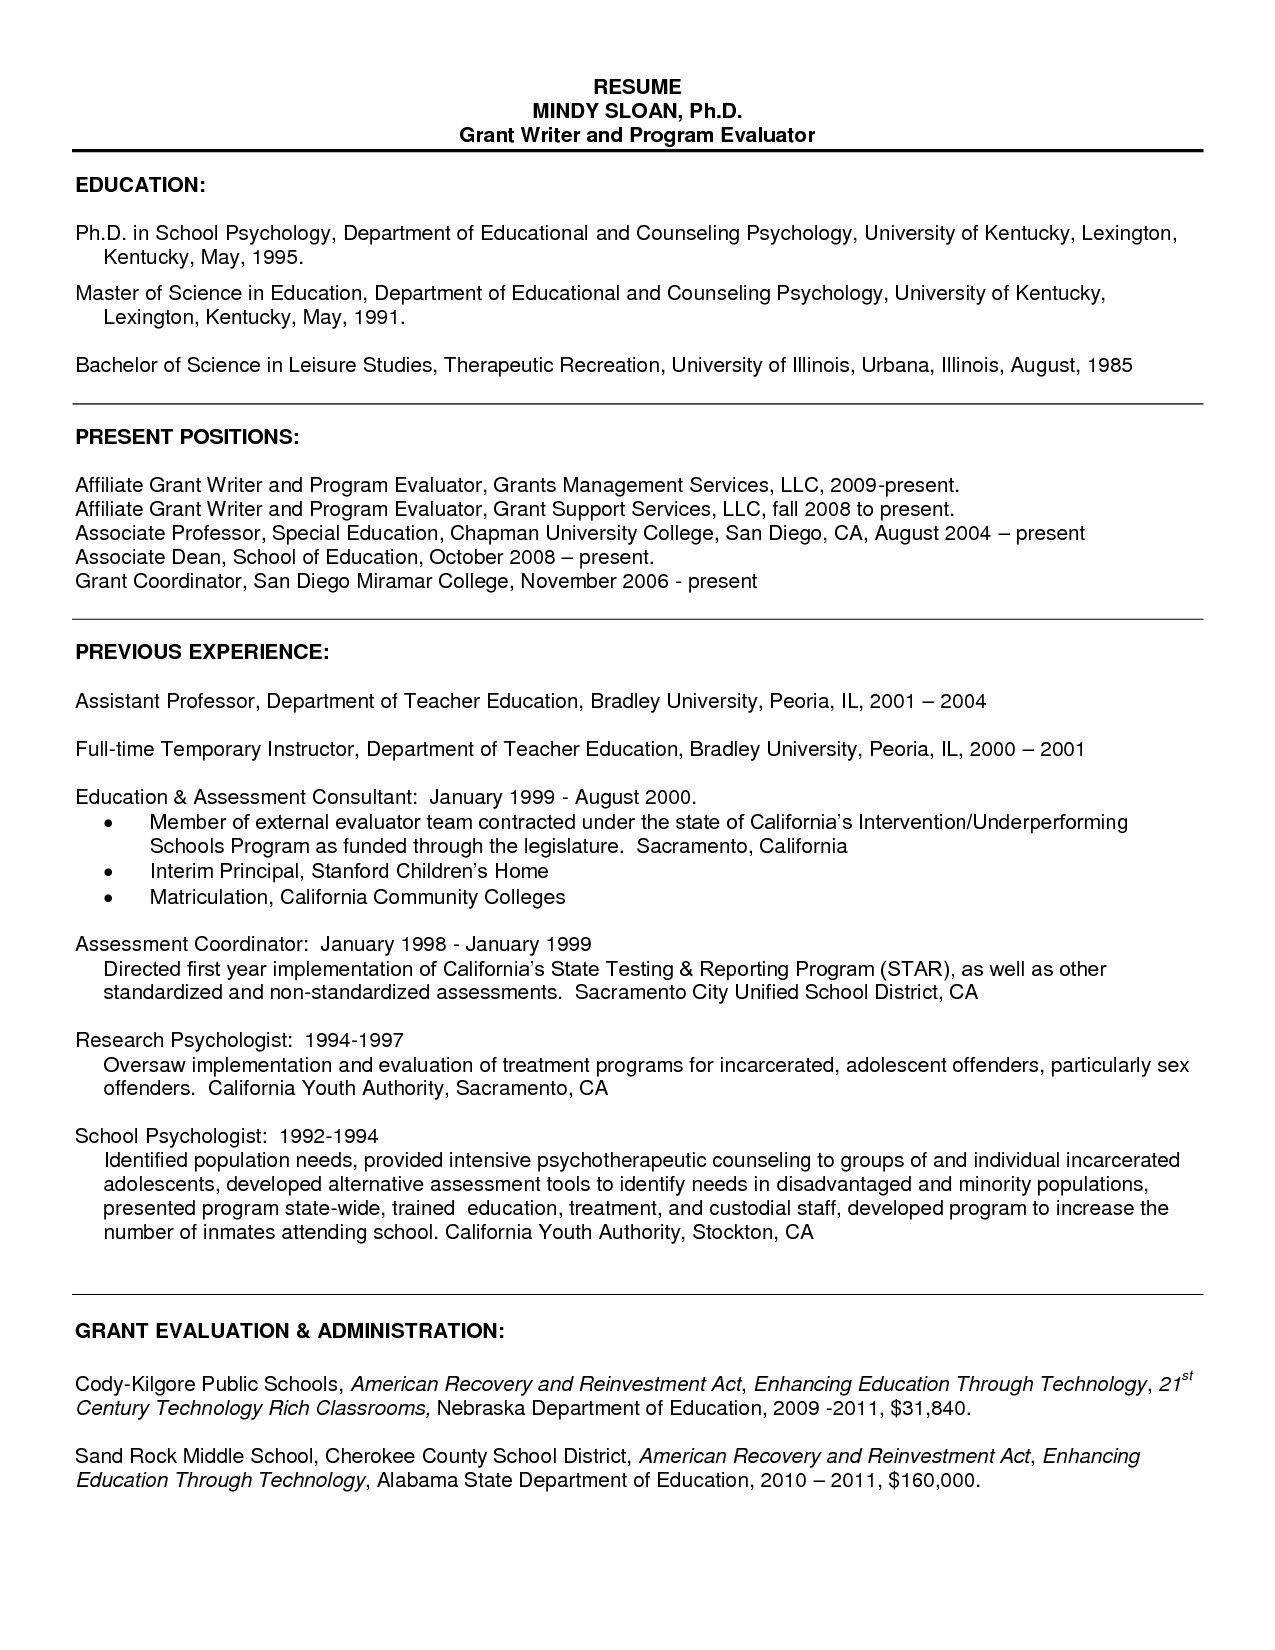 sample resume for psychology graduate jobresumesample com resume sample for psychology graduate are examples we provide as reference to make correct and good quality resume also will give ideas and strategies to